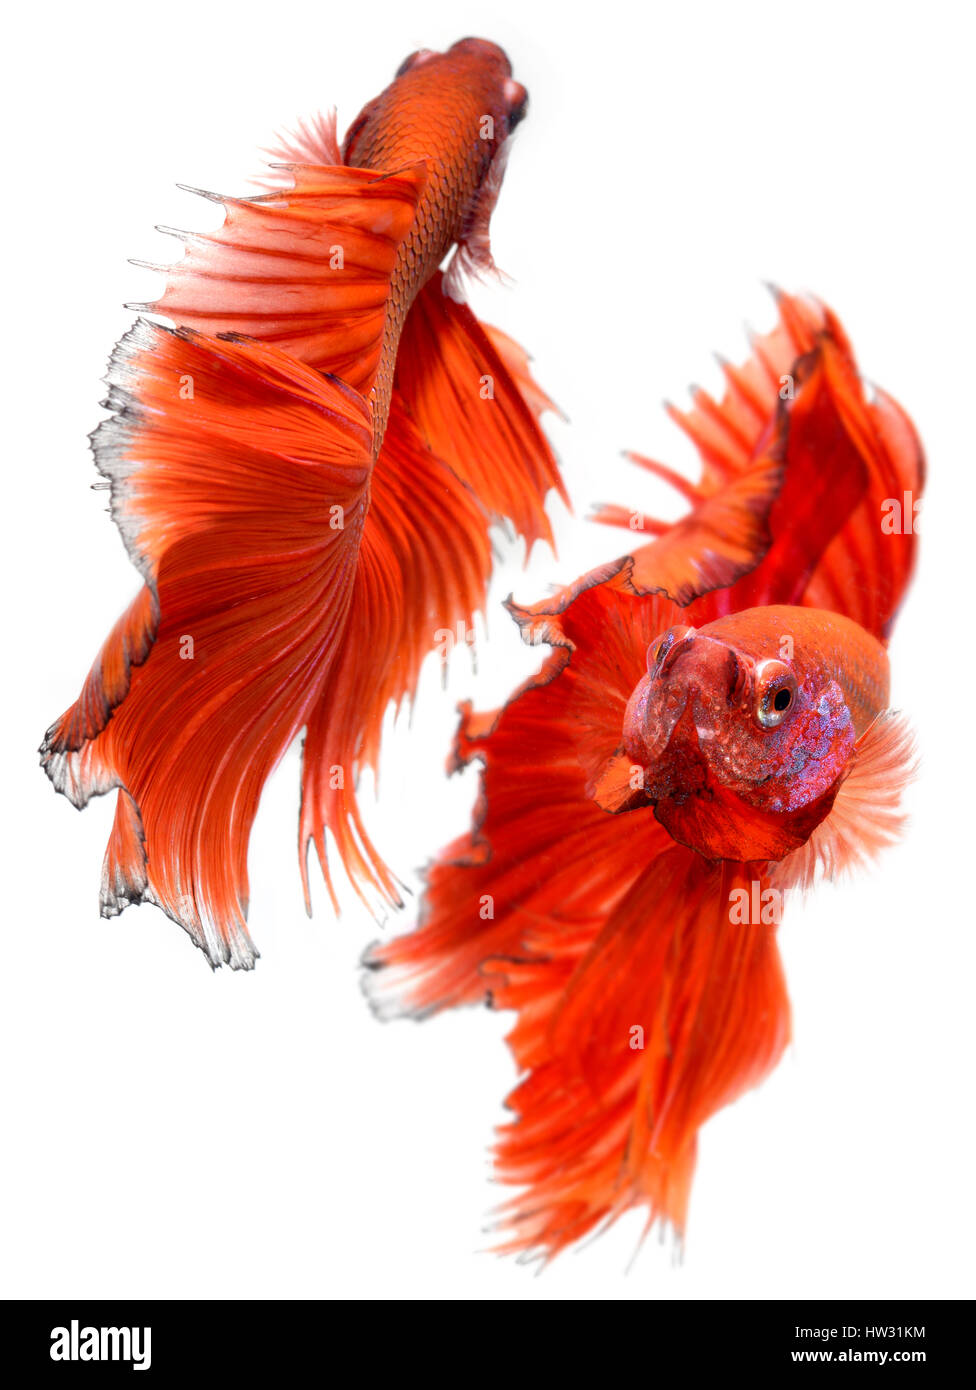 Betta fish in freedom action and show the beautiful fins tail photo ...